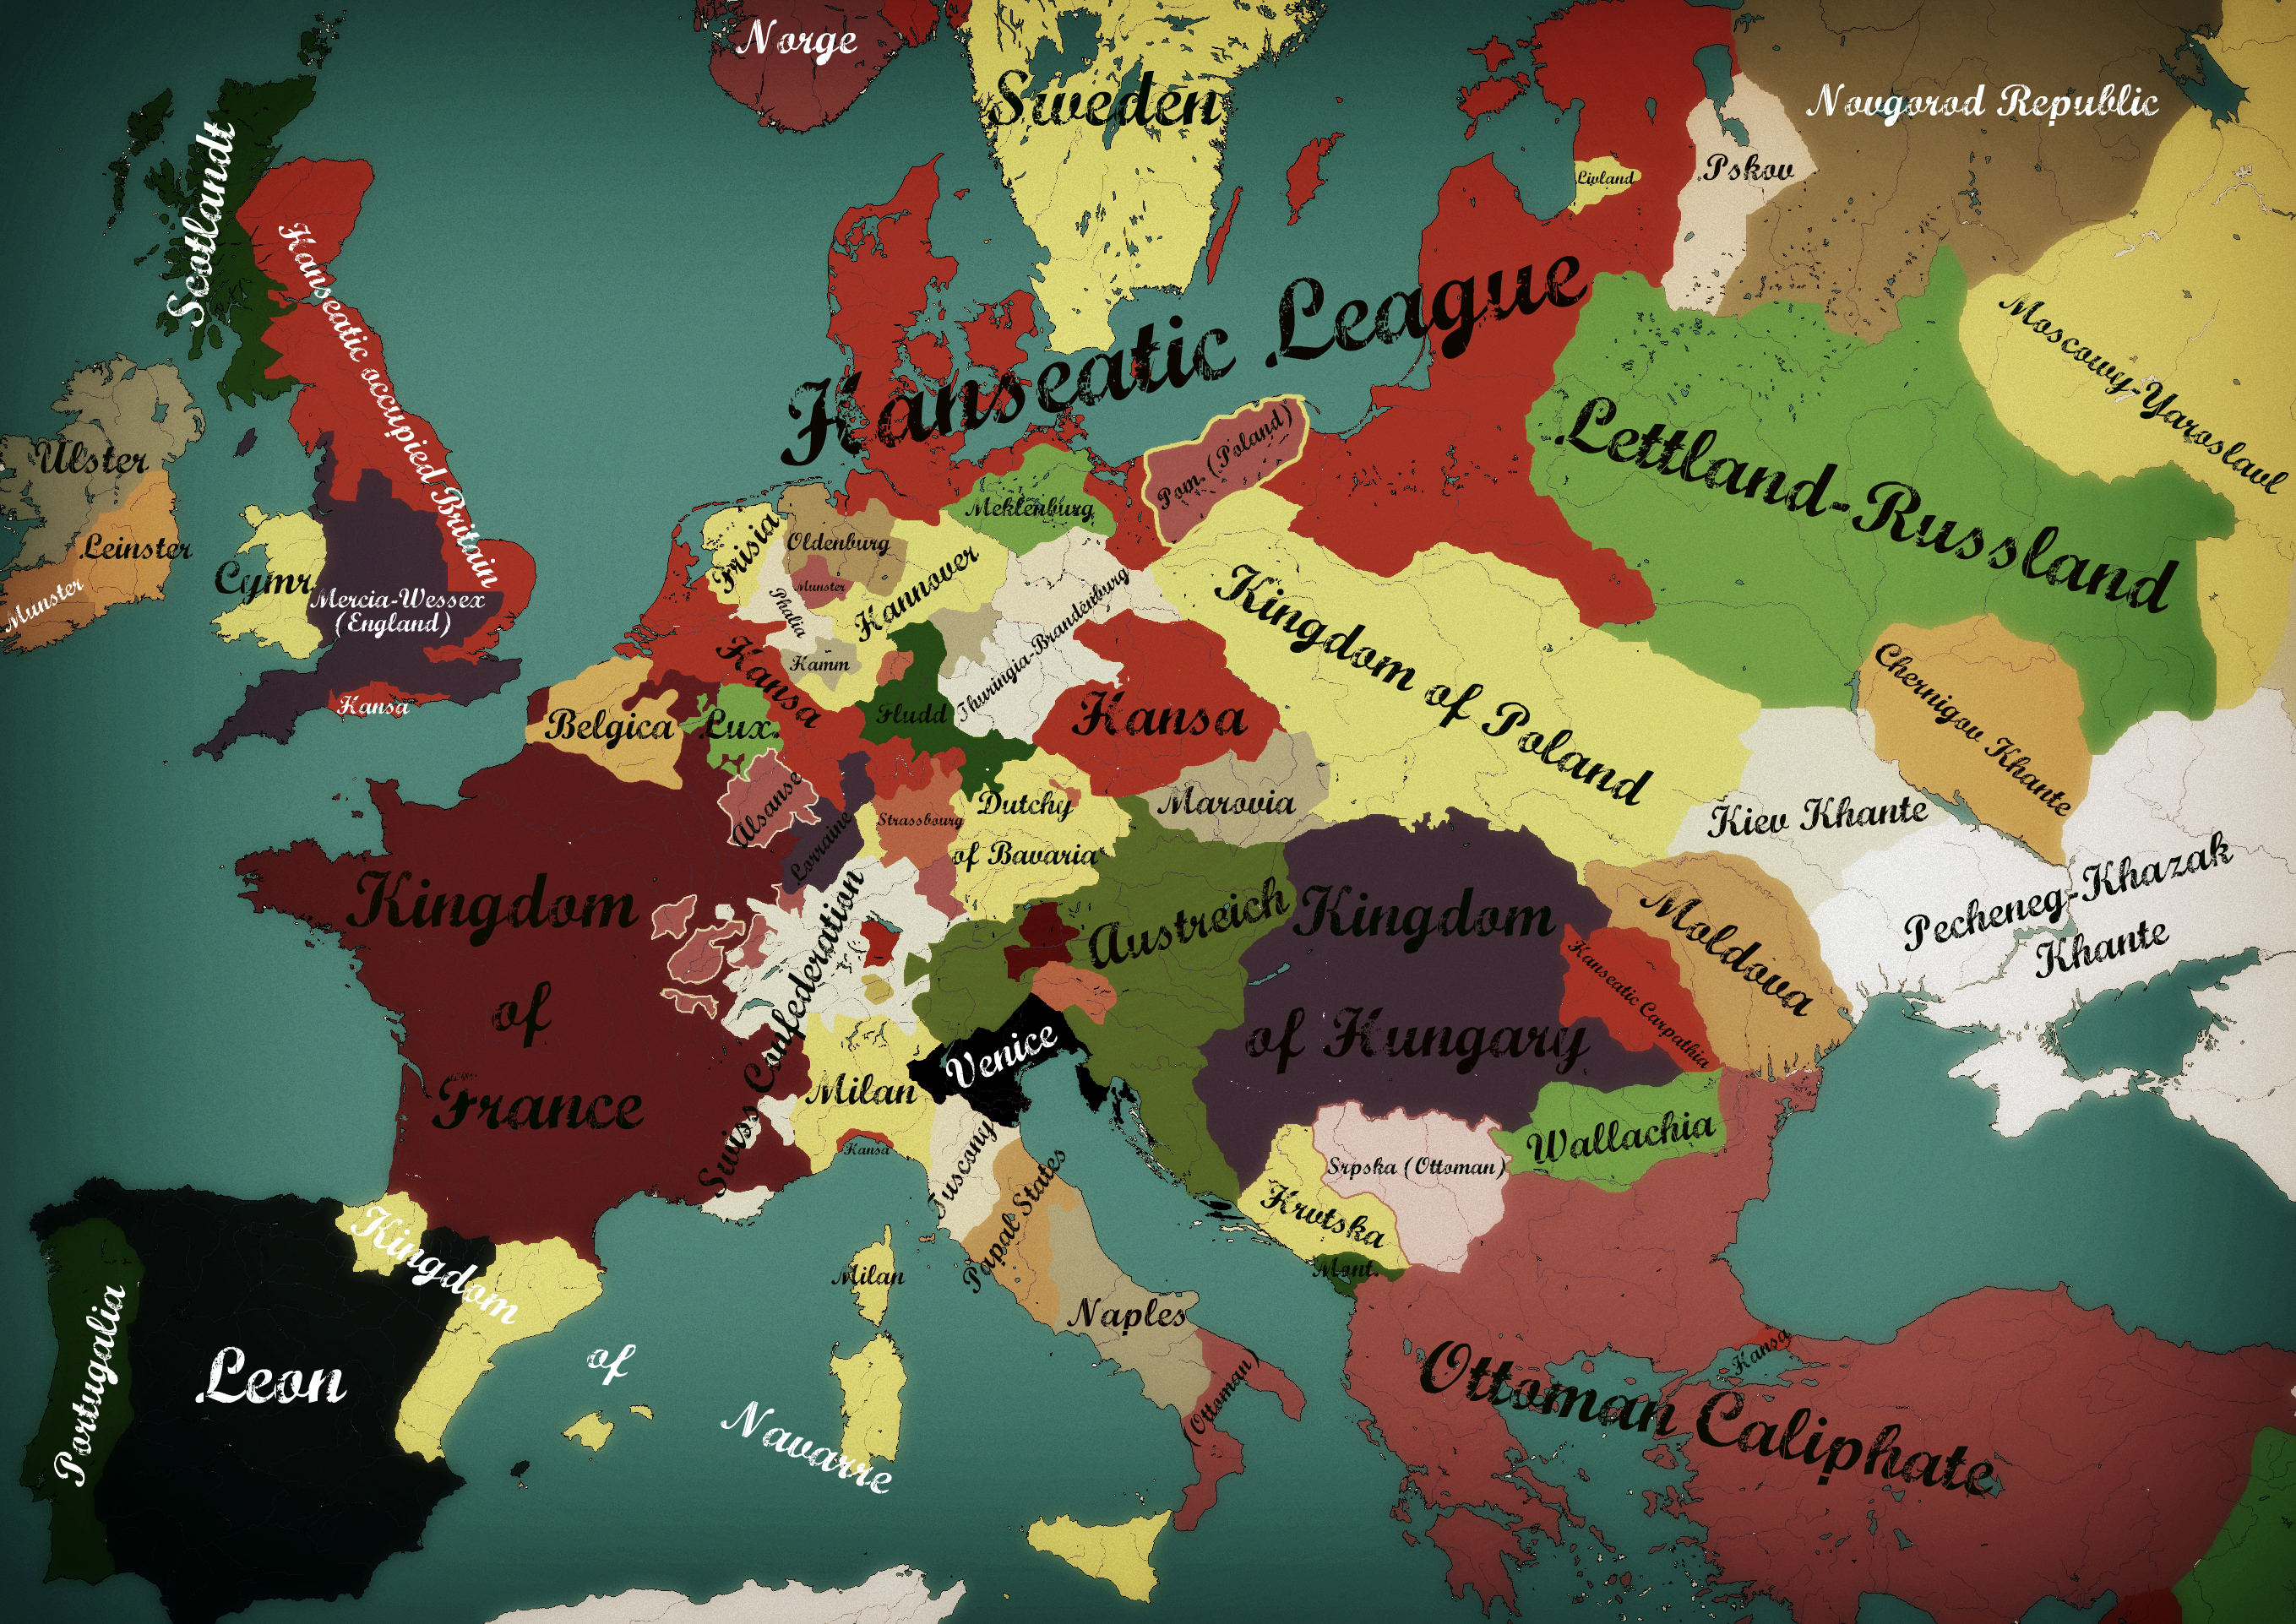 Alternate Europe Hansa 1500 by zalezsky on DeviantArt